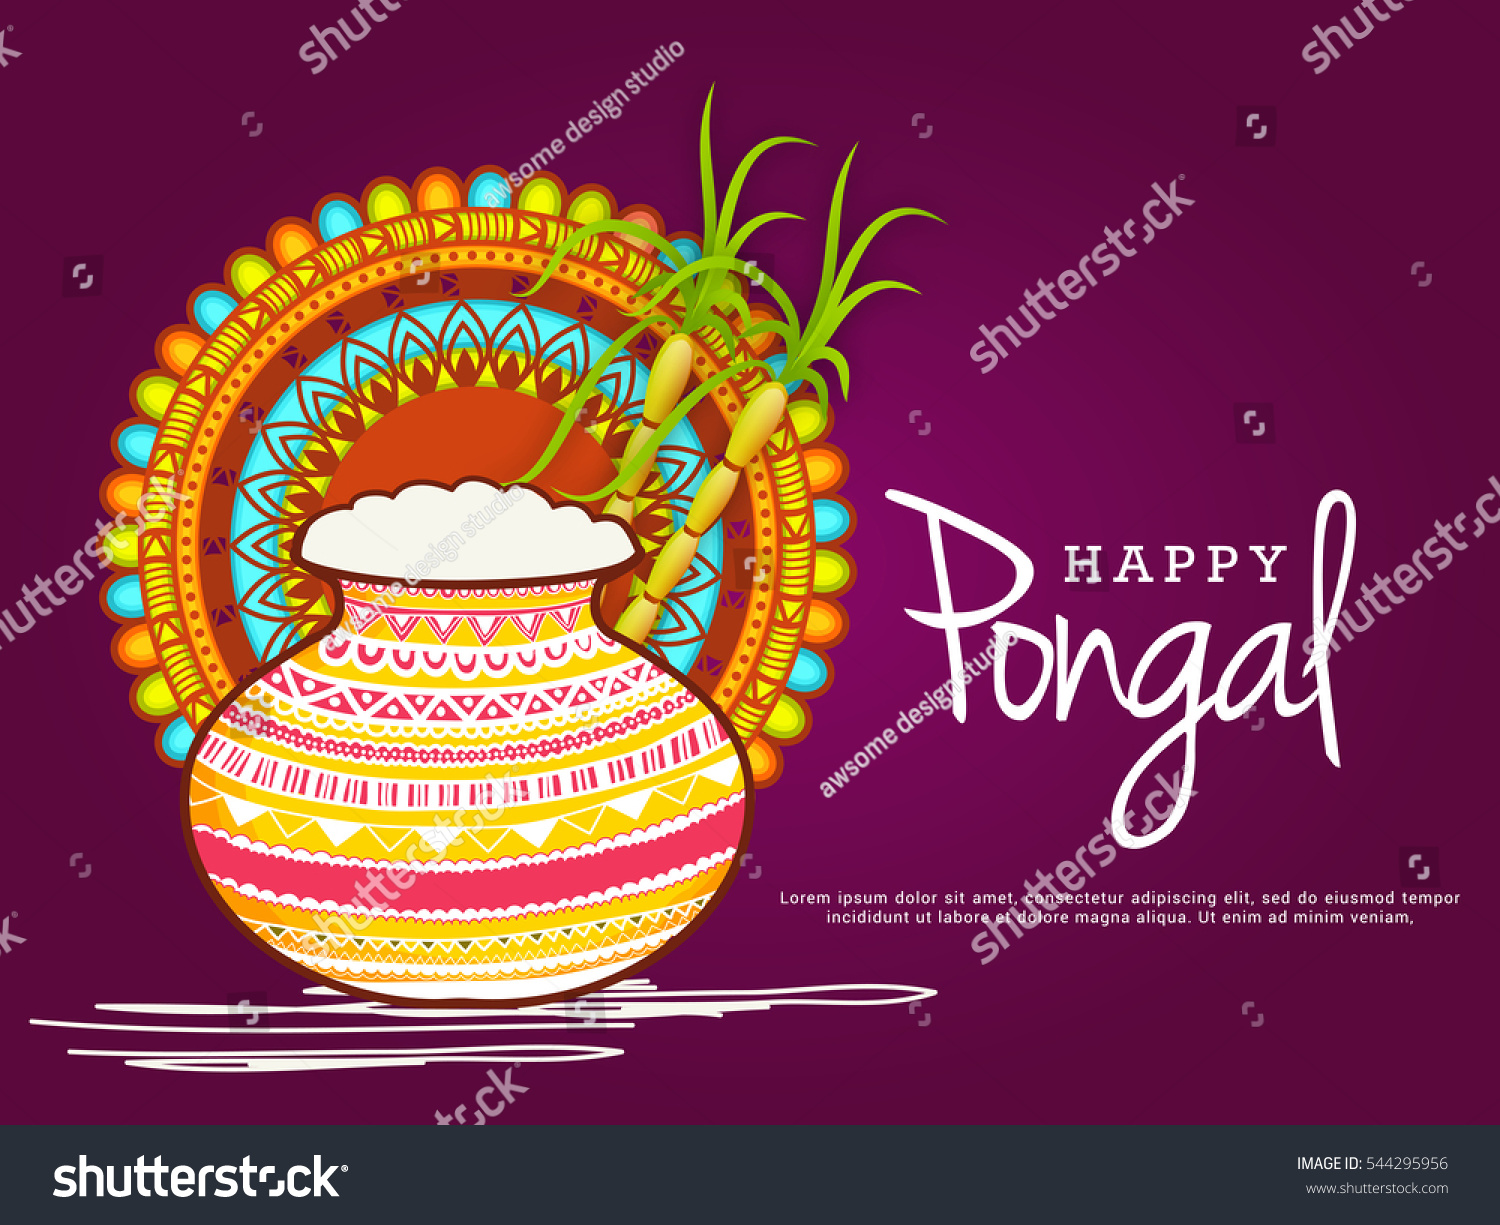 Happy pongal greeting card stock vector royalty free 544295956 happy pongal greeting card m4hsunfo